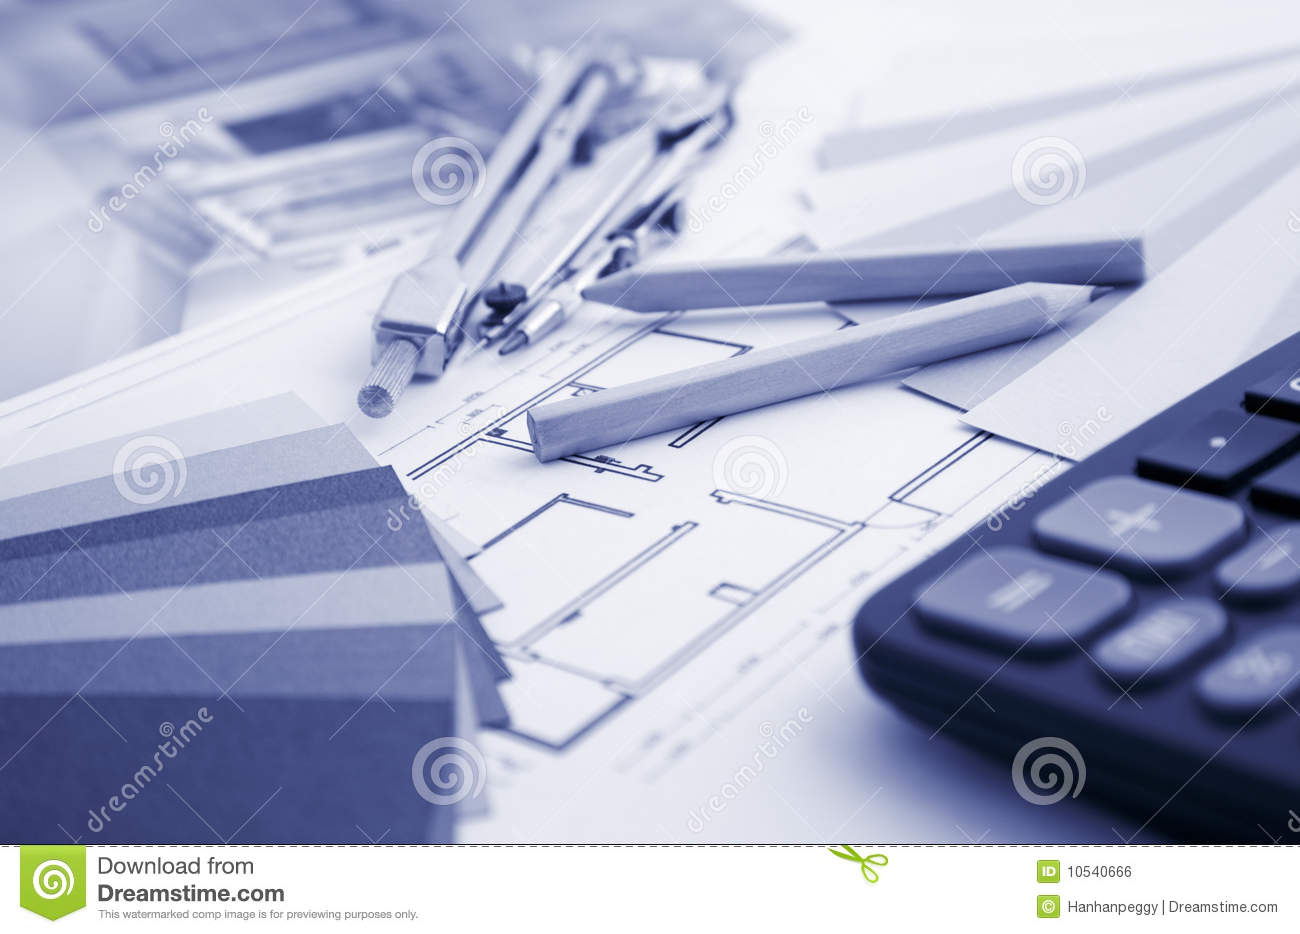 Interior Design Tools Free residential interior design and tools royalty free stock image